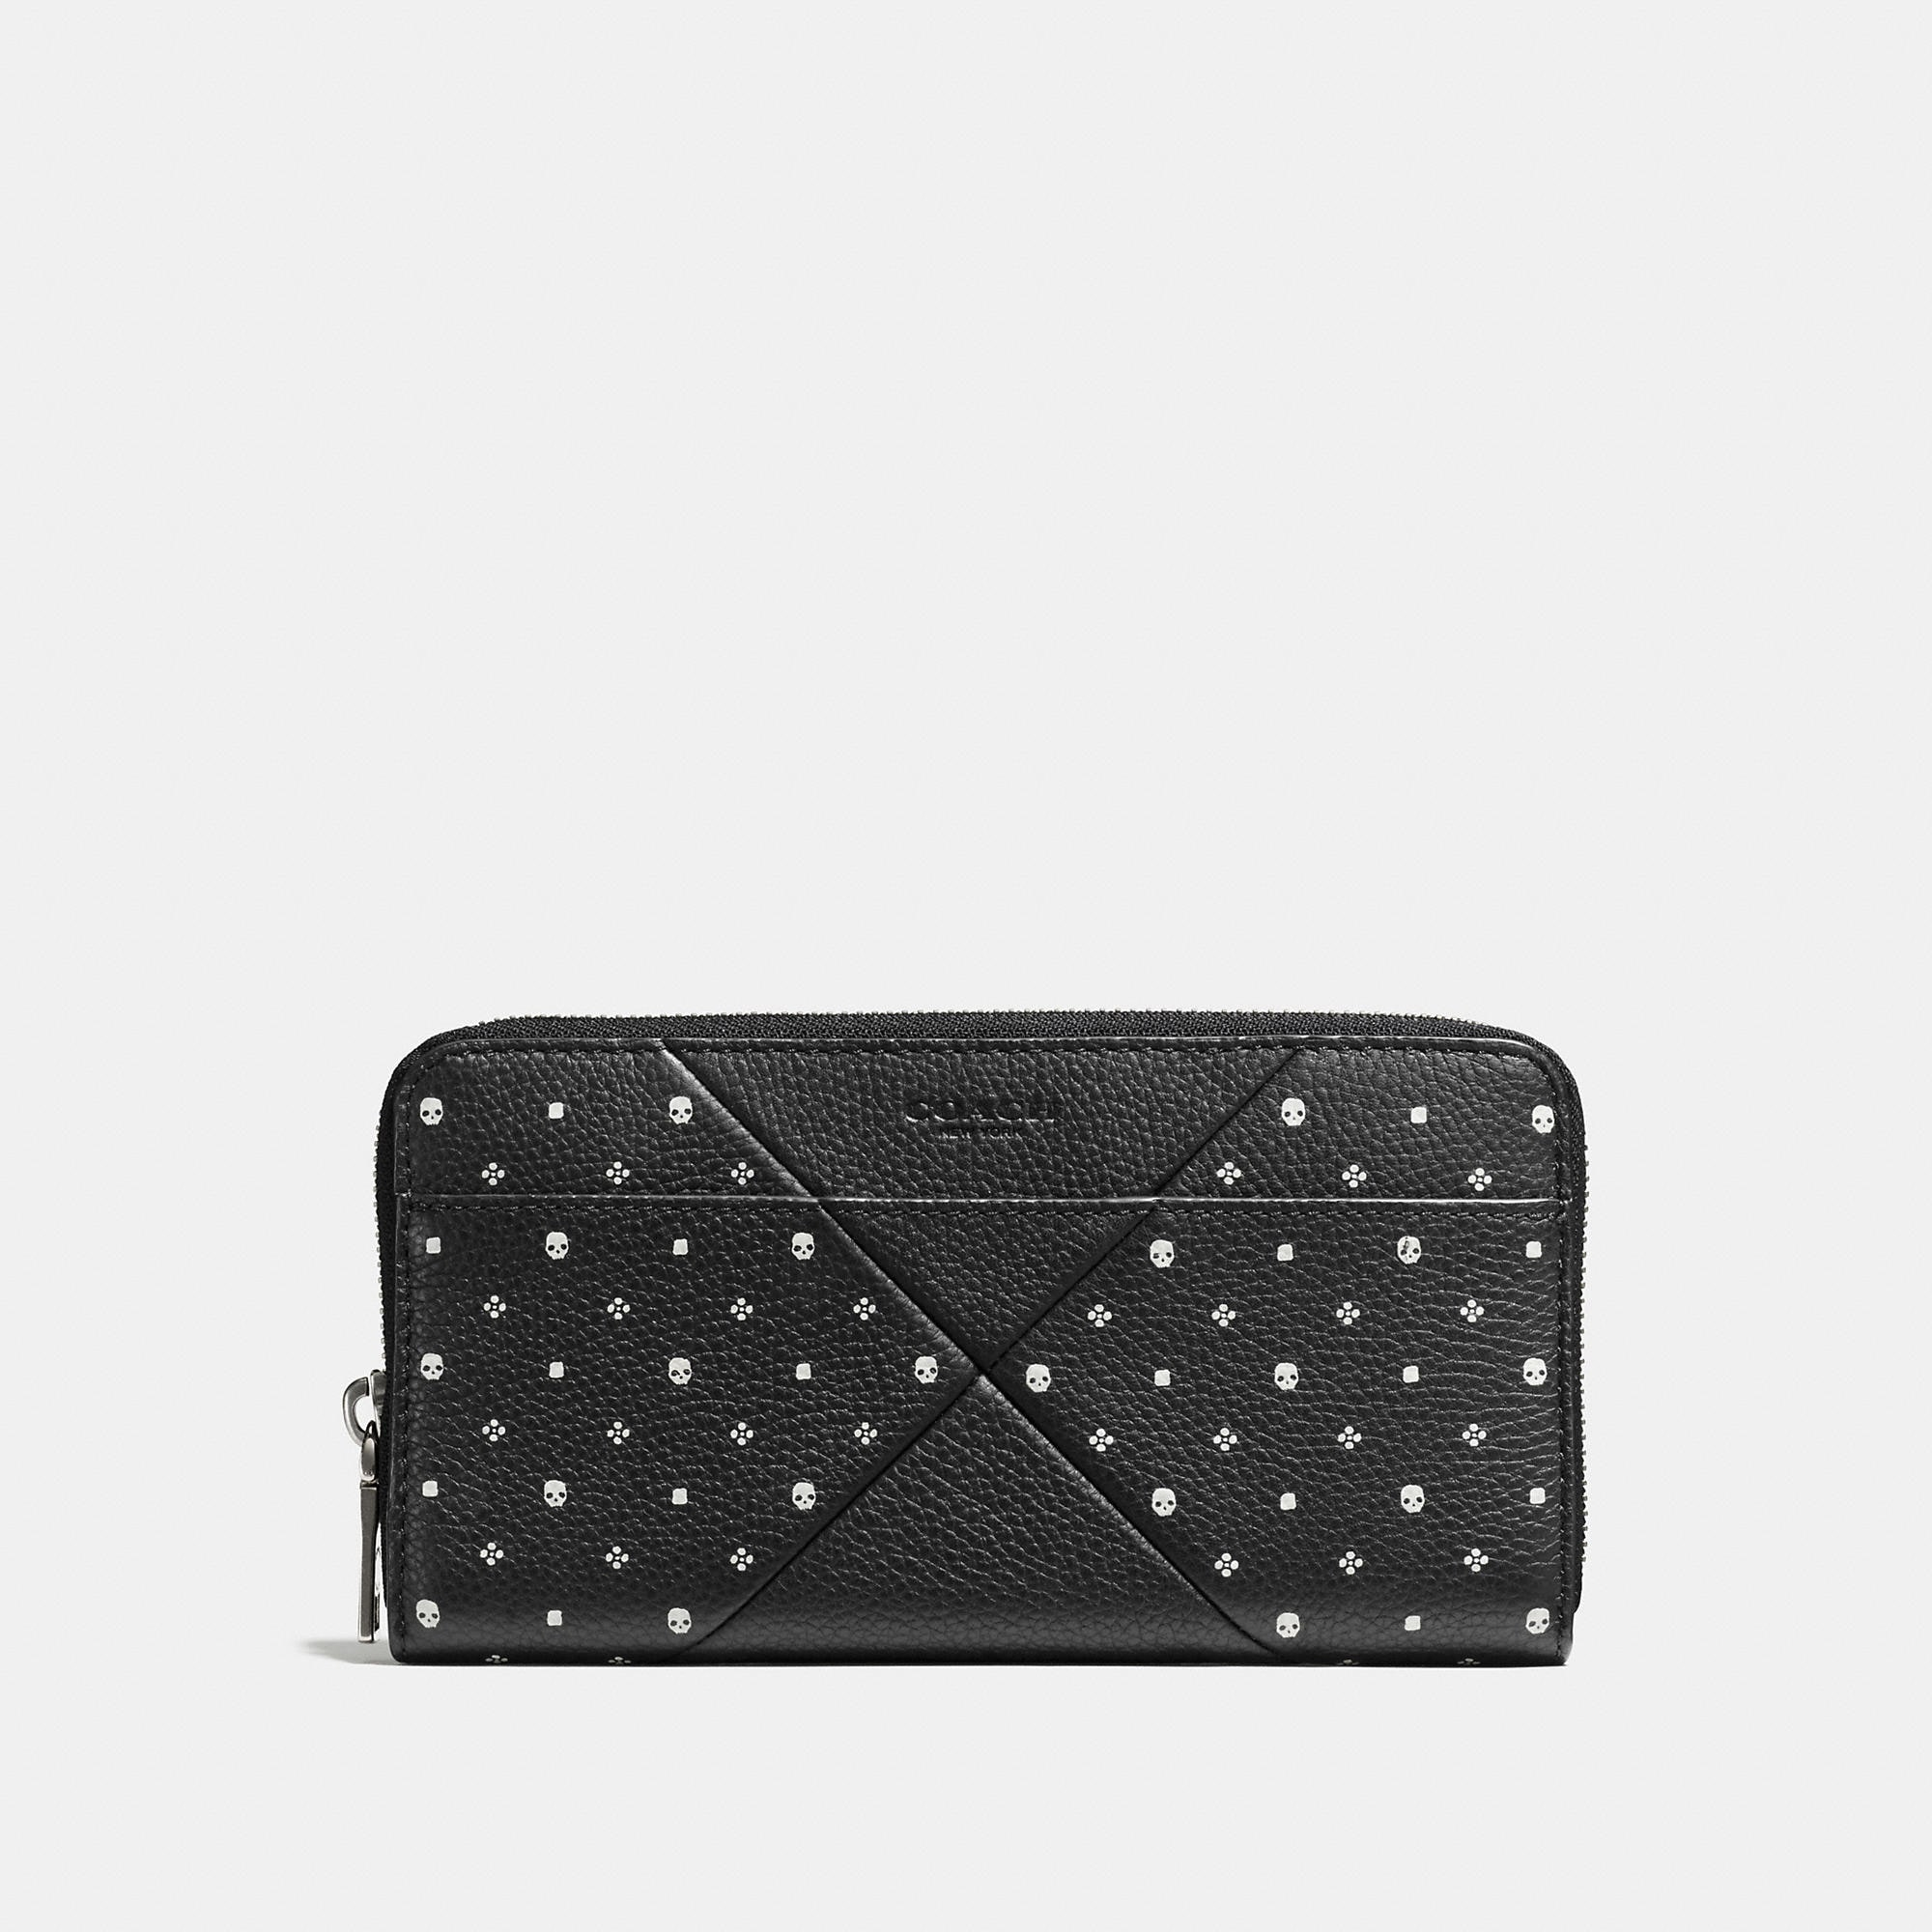 Coach Accordion Wallet In Bandana Patchwork Leather